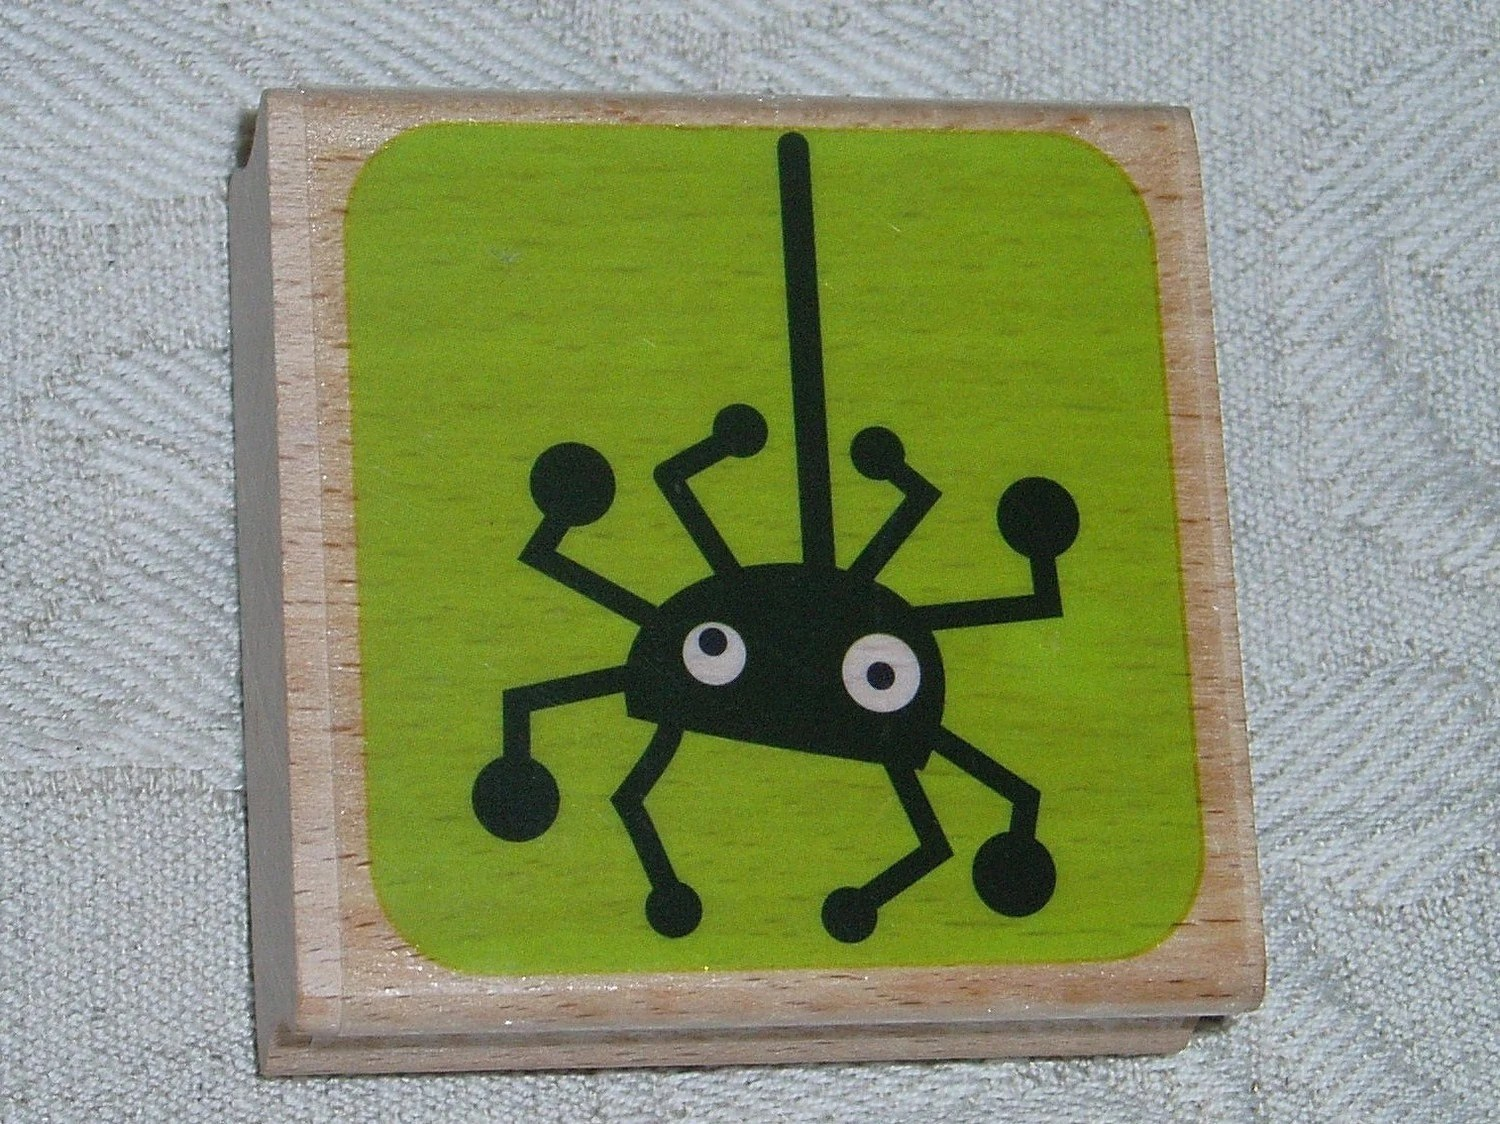 Halloween Spider Stamp Wood Block Mounted Rubber from Studio G for Spooky Card Making, Scrapbooking Crafts - VintageCarolina